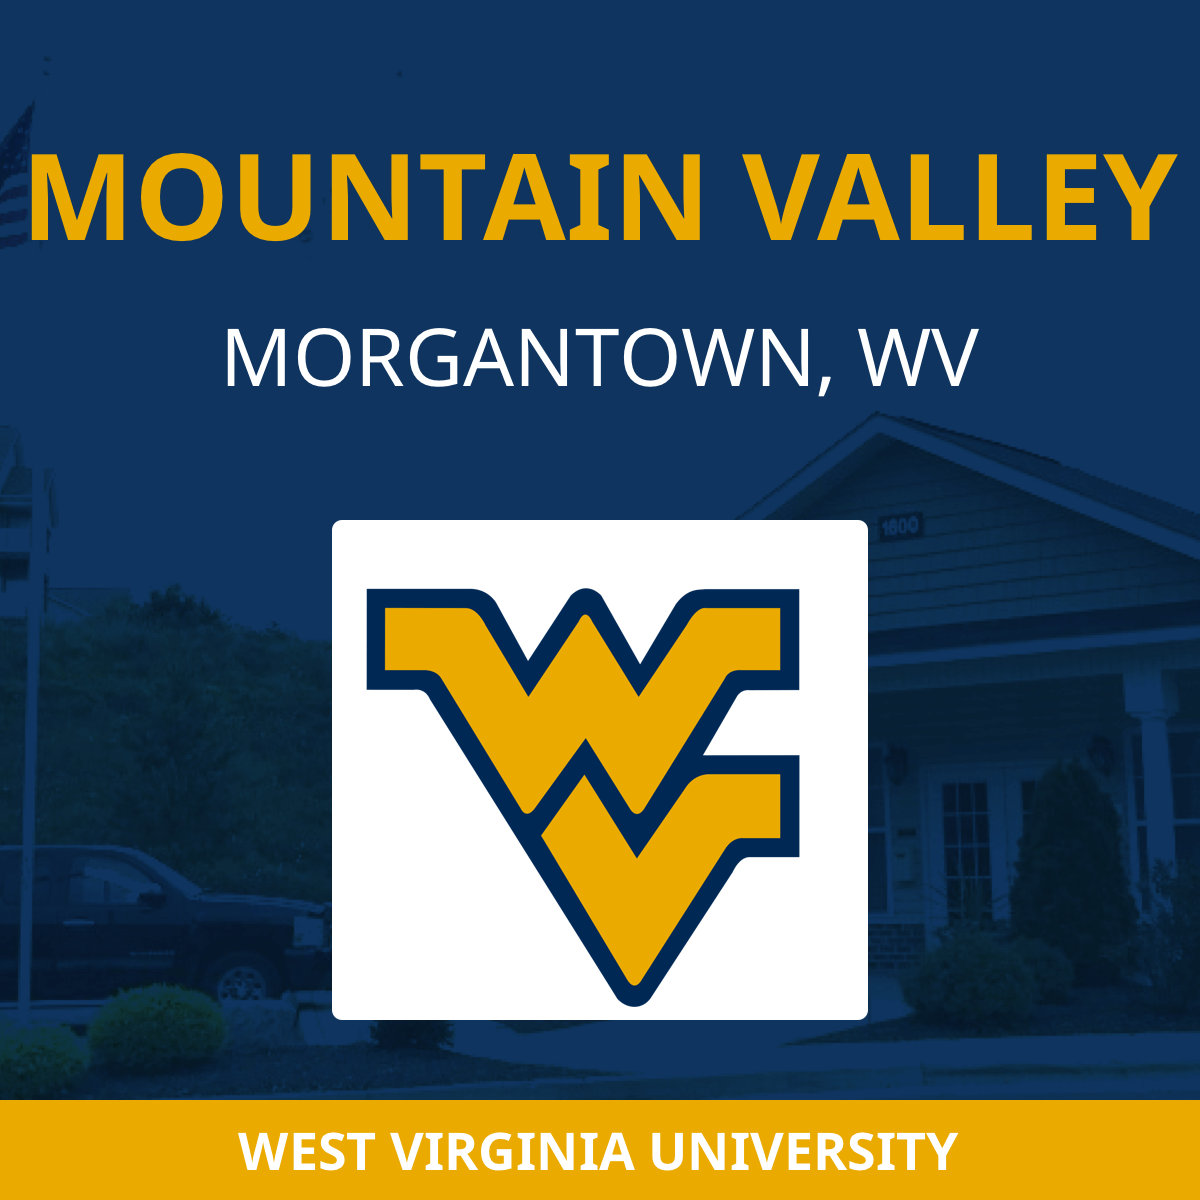 Wvu Student Housing Apartments Morgantown West Virginia Morgantown Wv